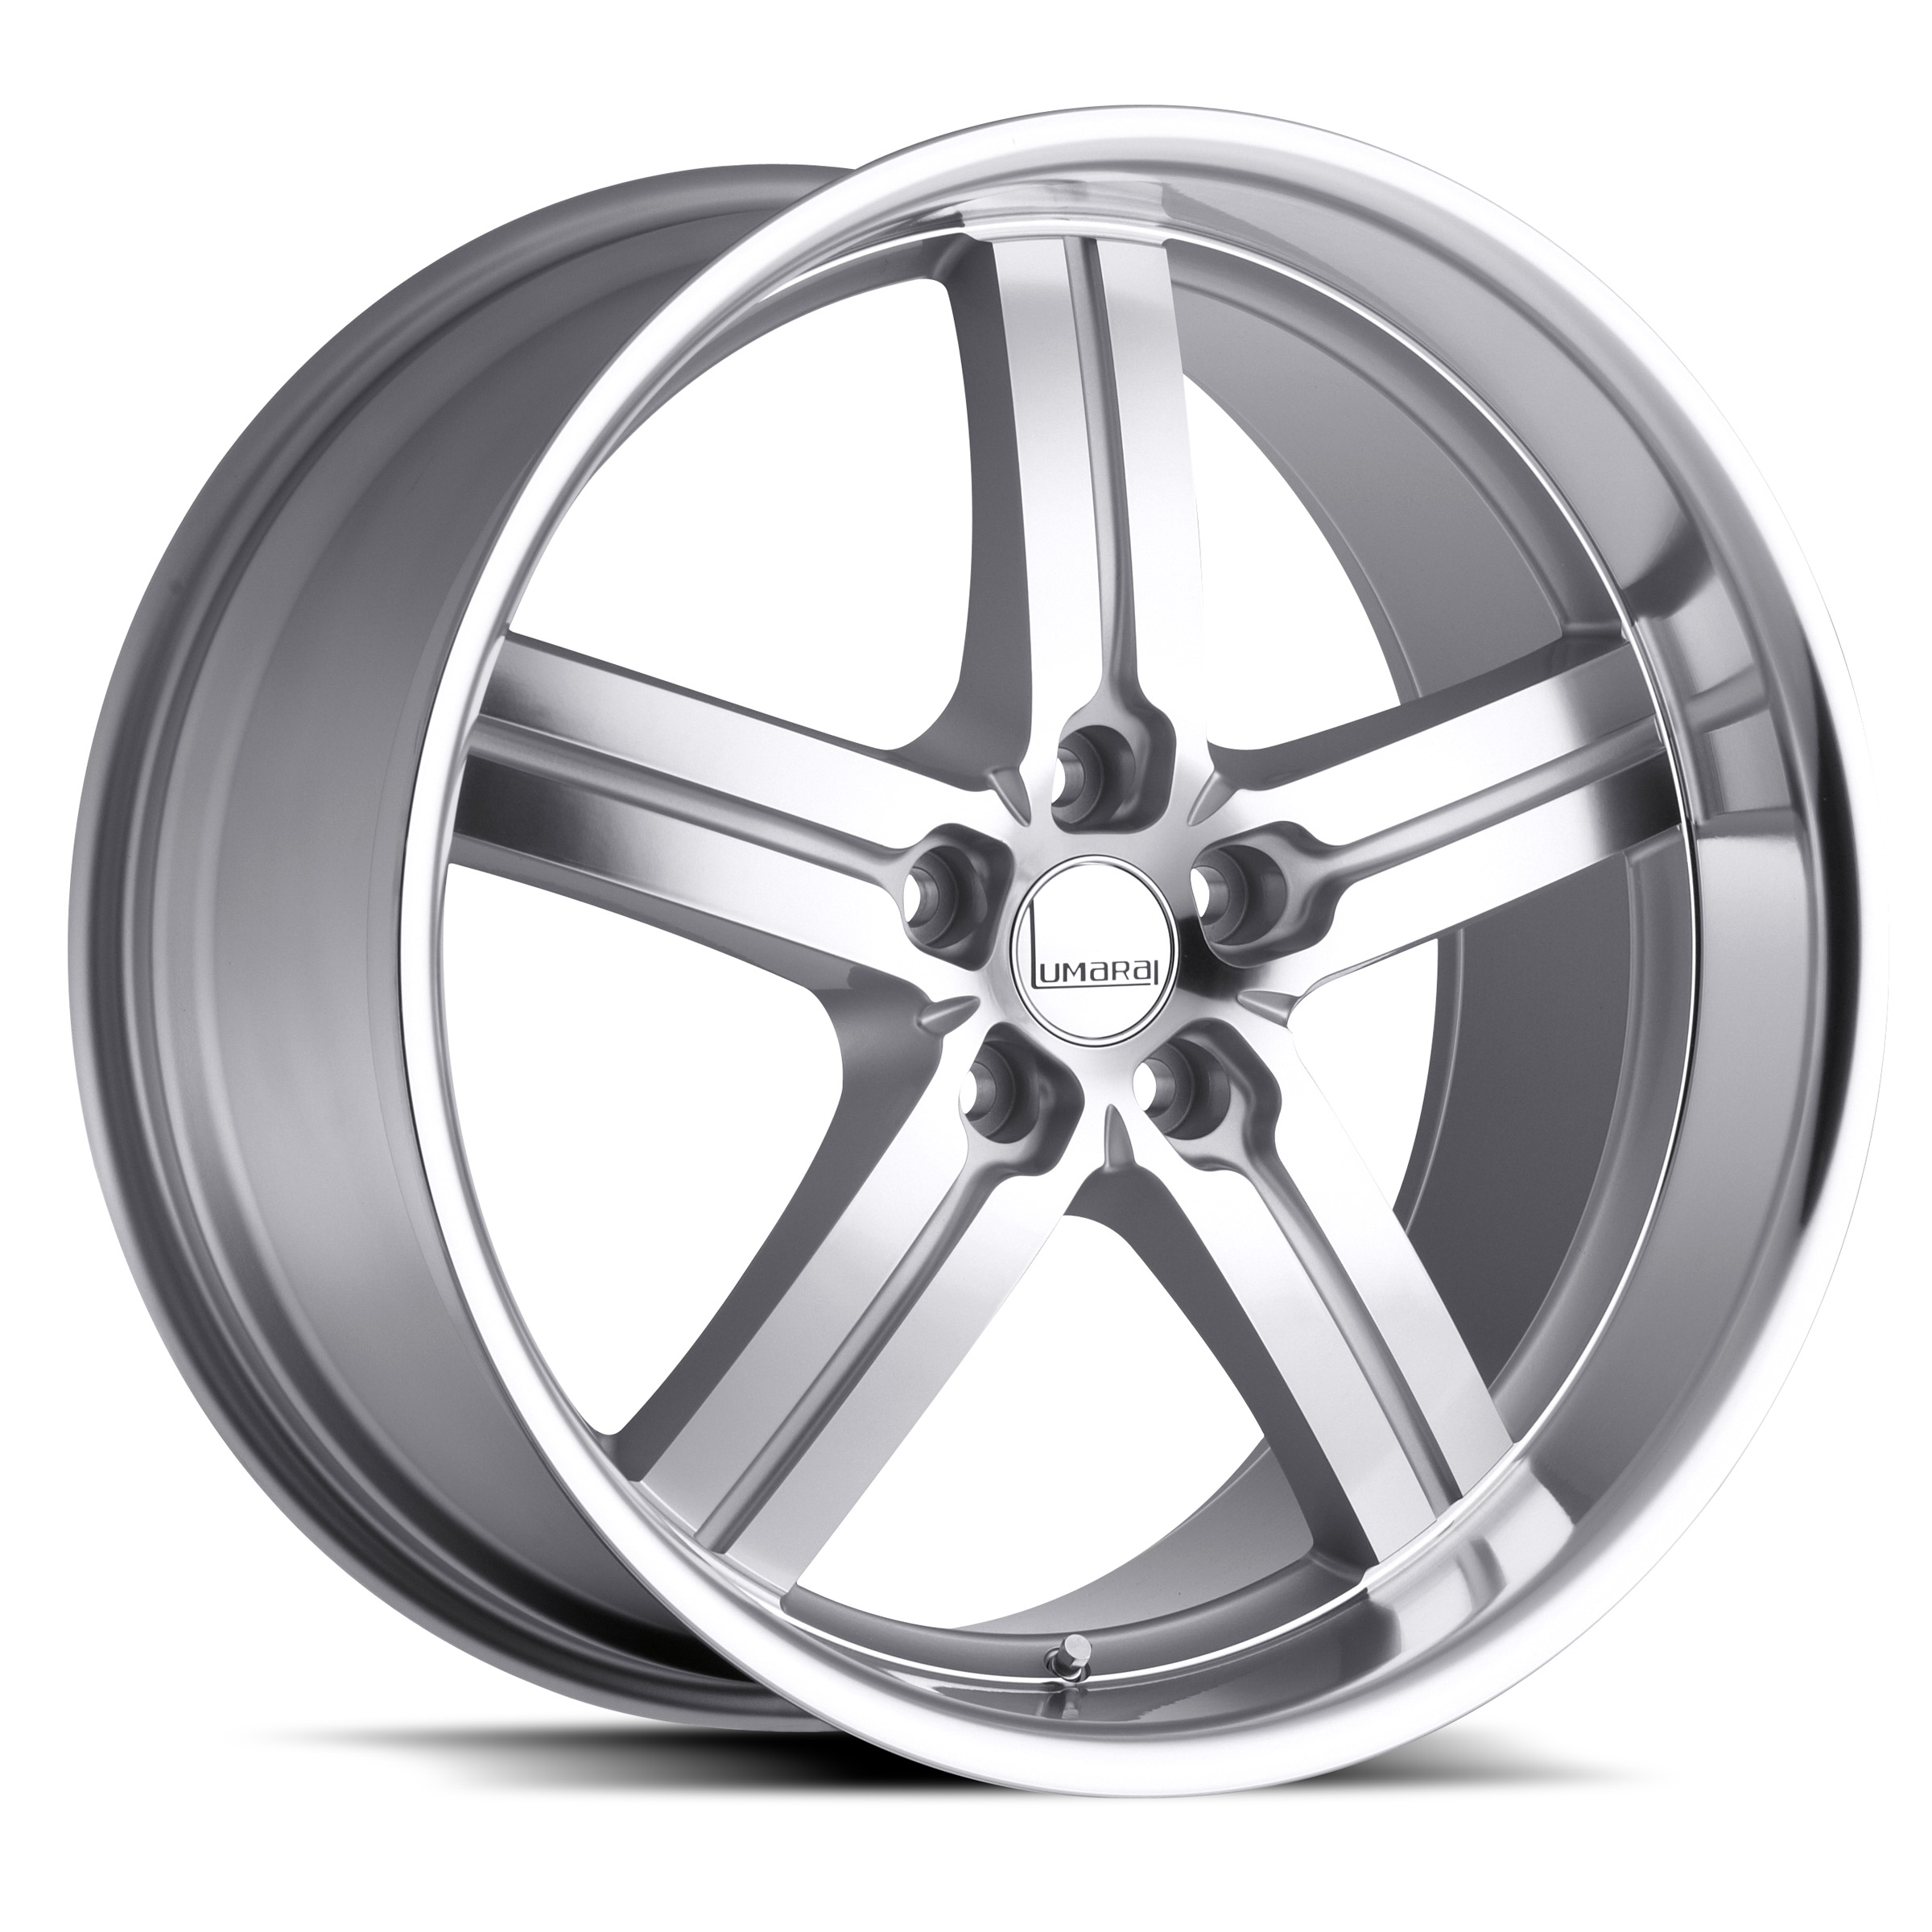 TestWheels - AJRS.com | Wheels & Tires Replacement